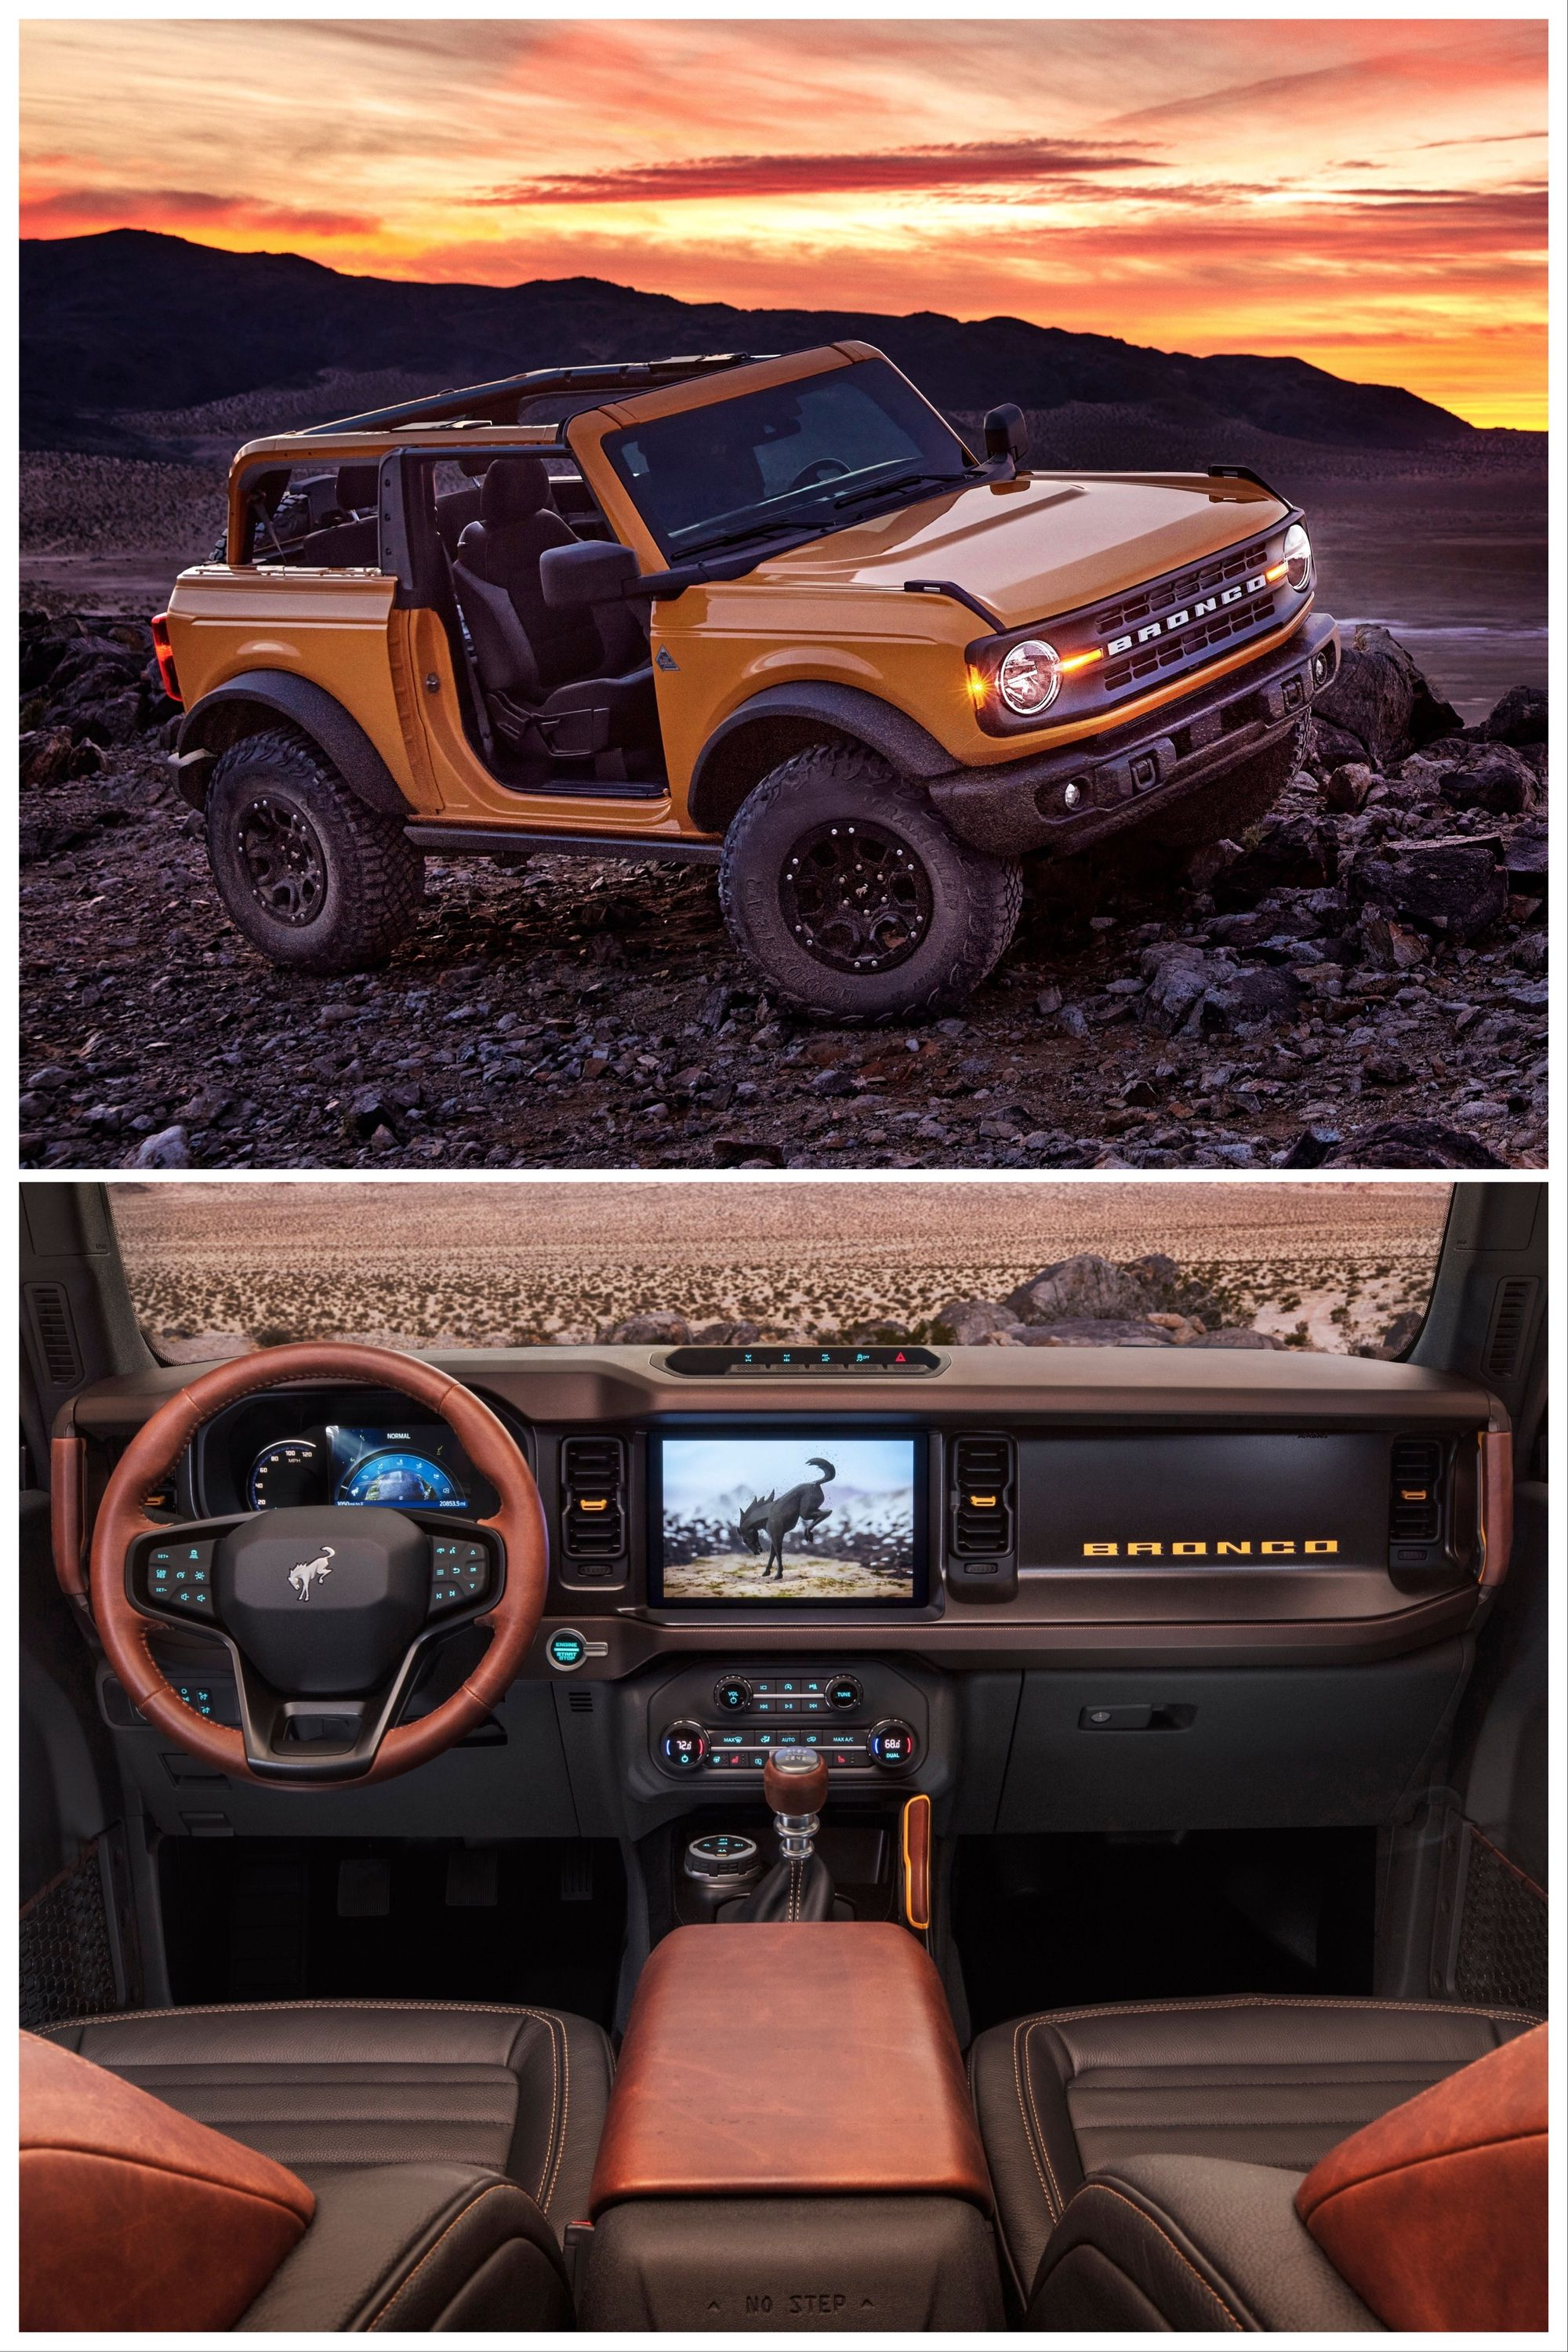 Pin By Jose Hilera On Cars Motorsports In 2020 Ford Bronco Ford Bronco Concept Bronco